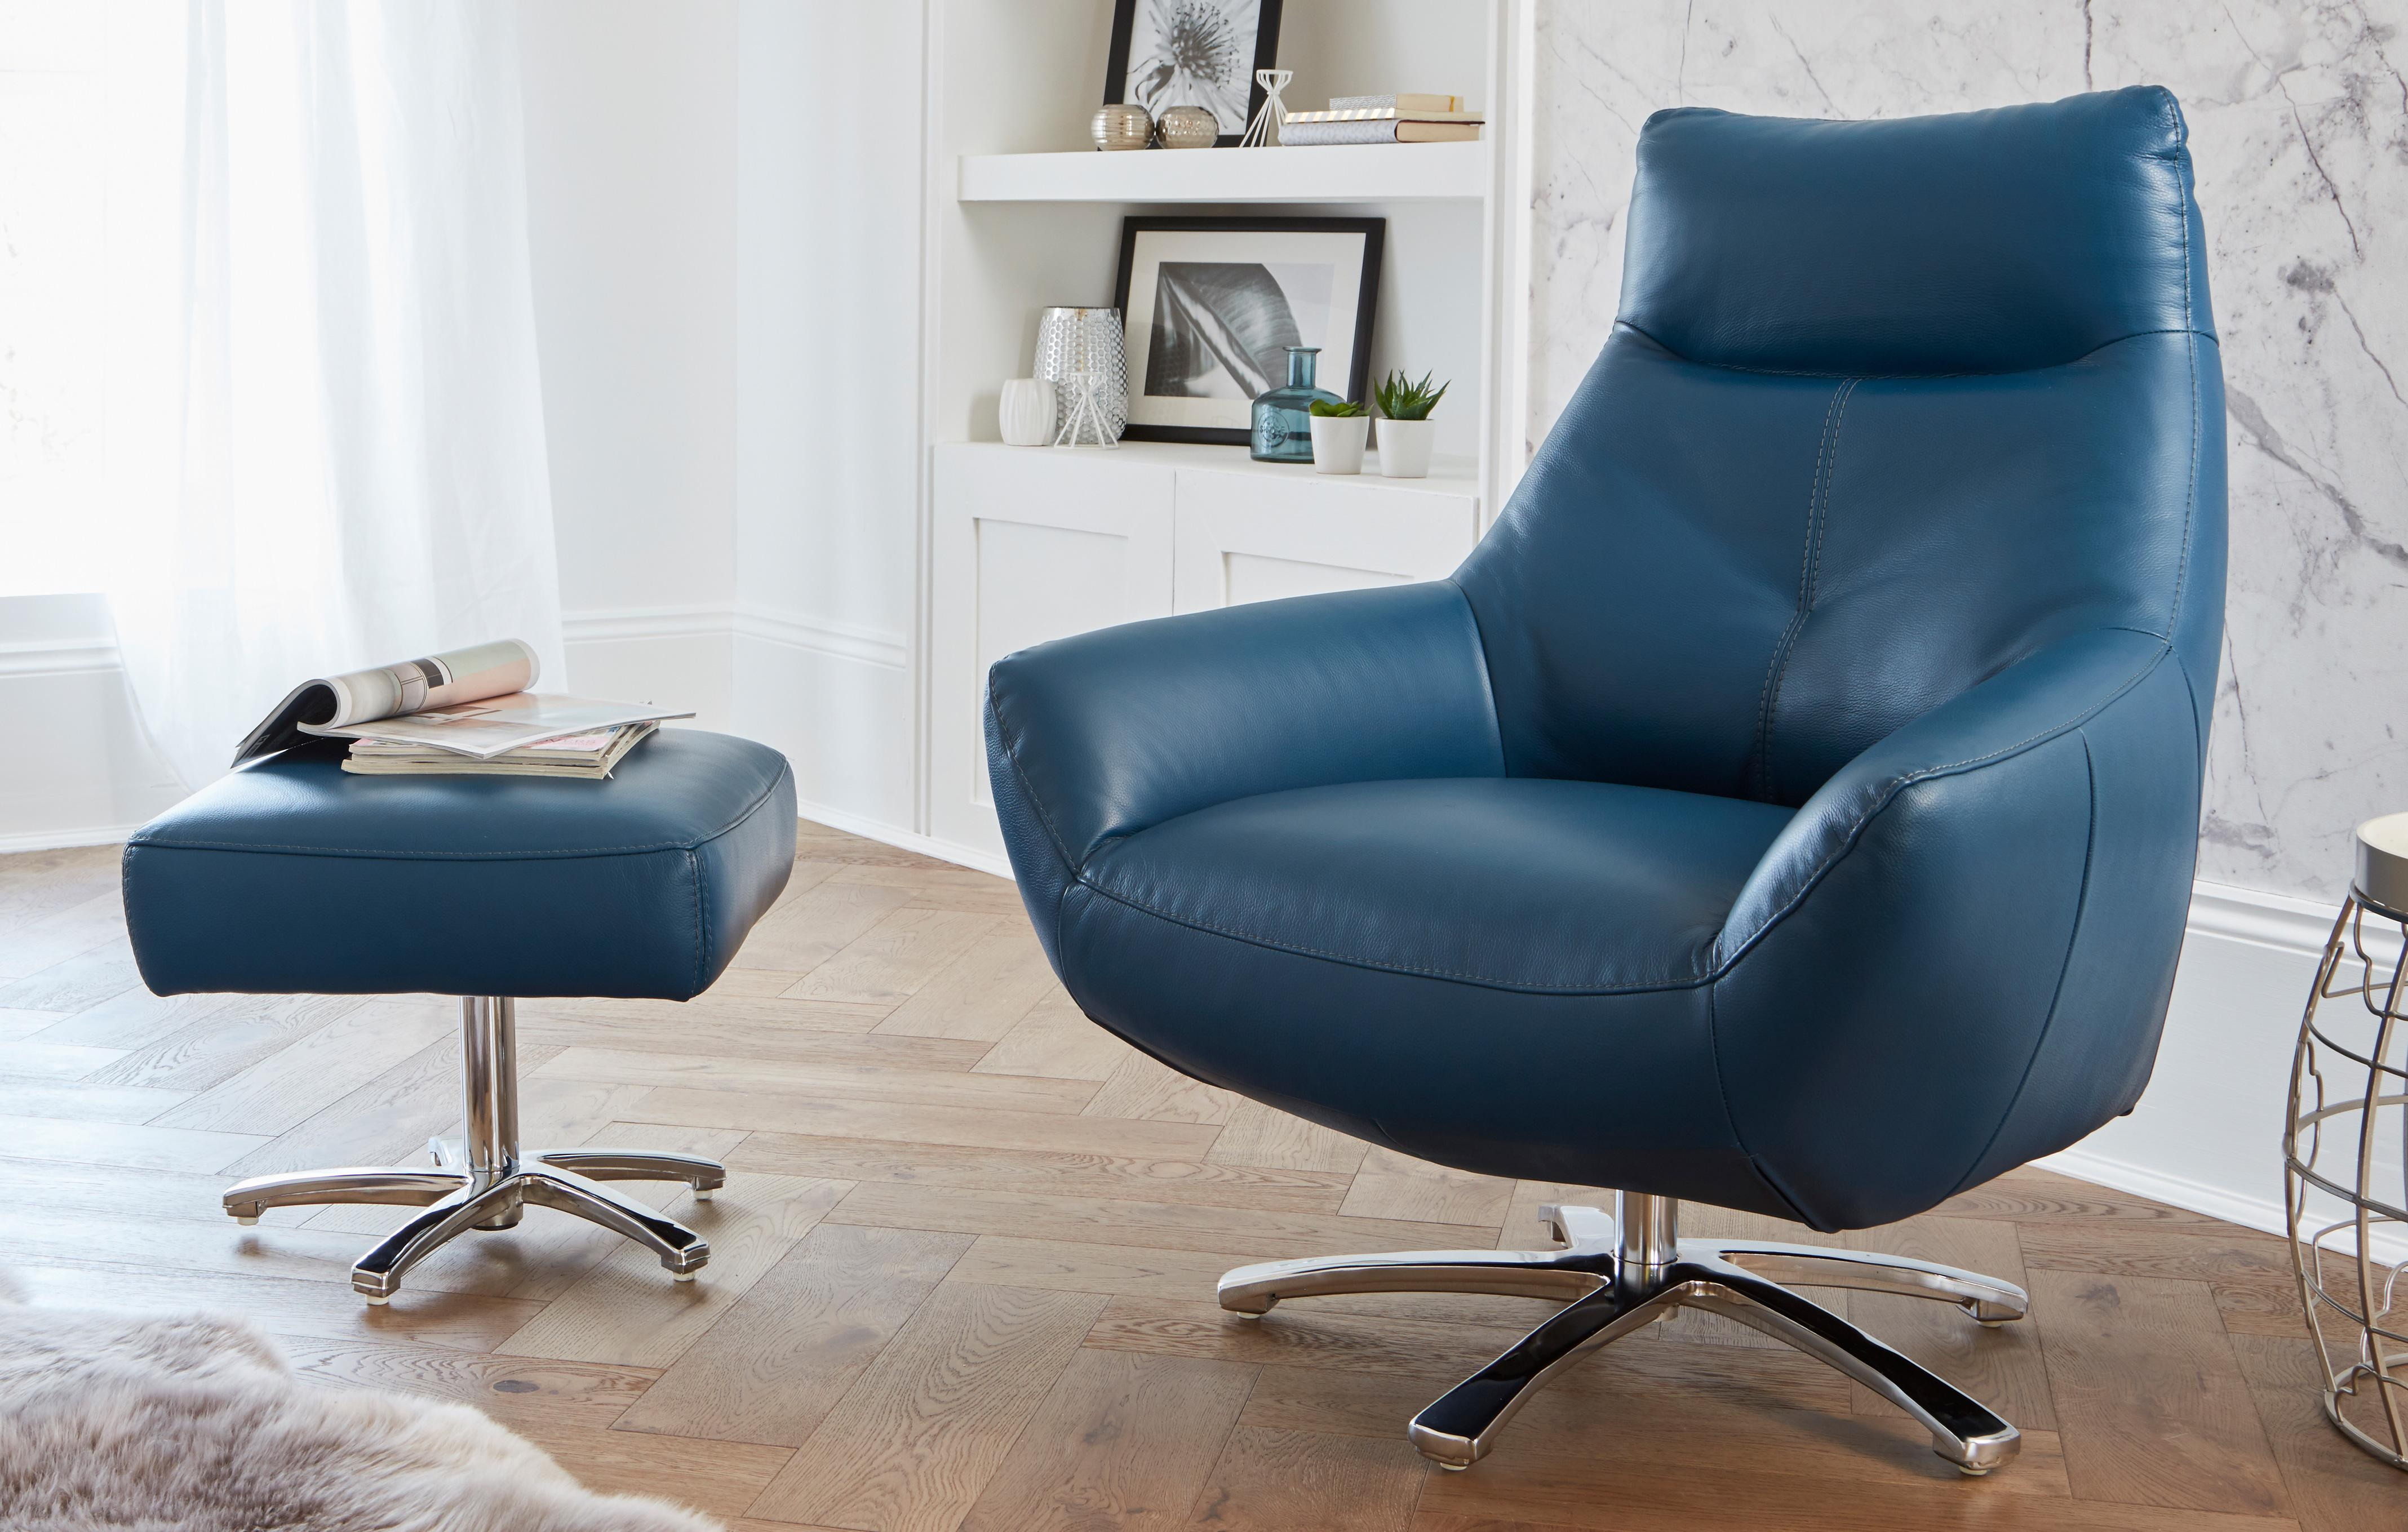 Chairs In Styles Including Swivel Recliners DFS